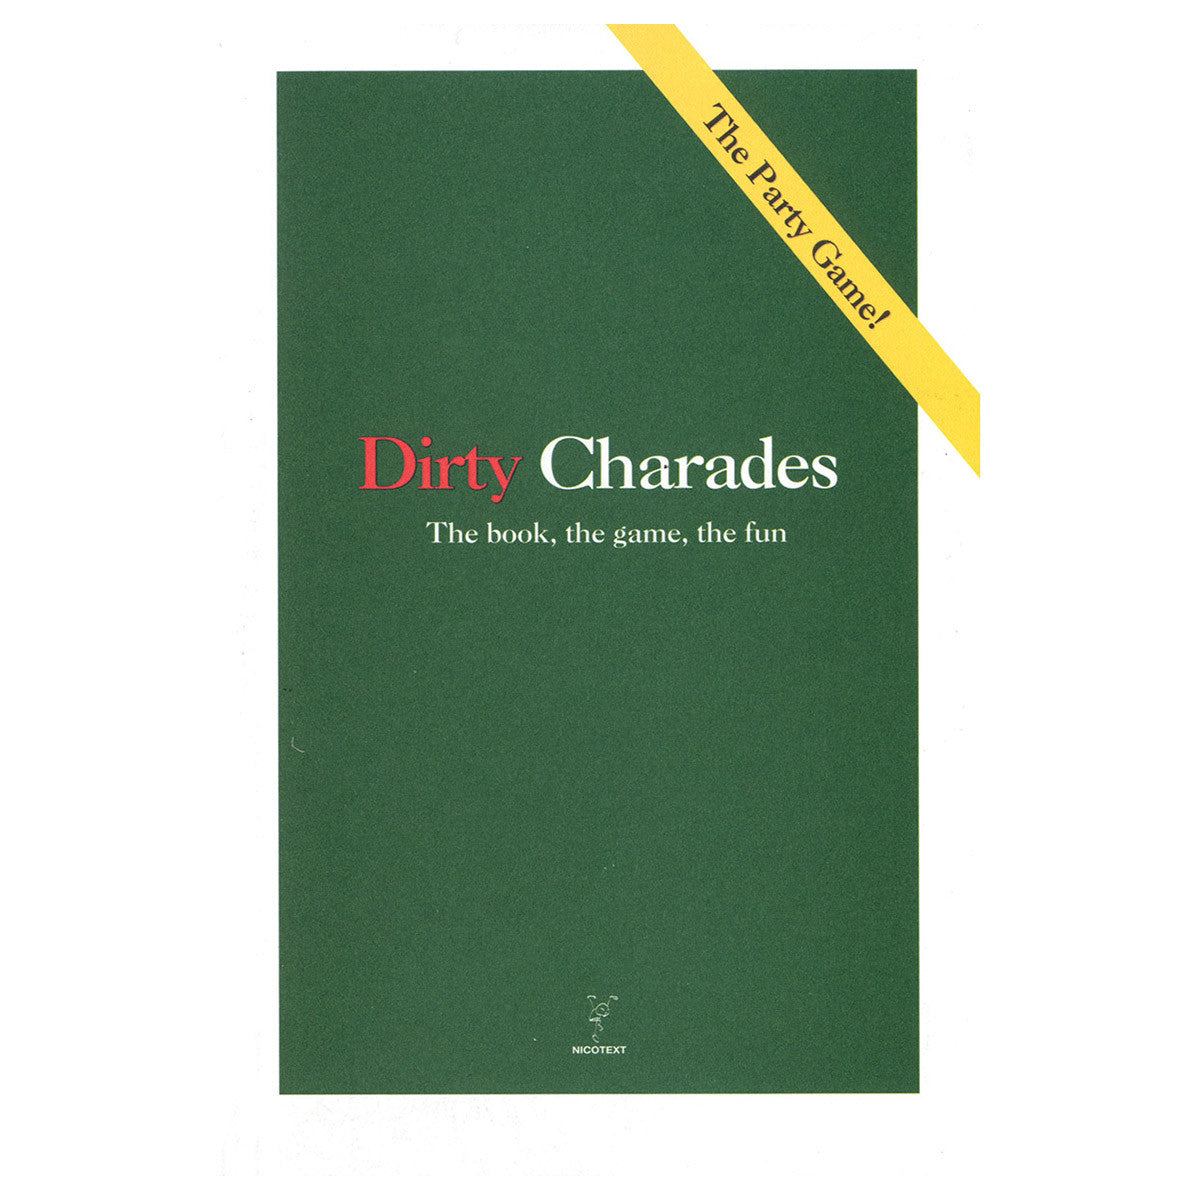 Dirty Charades: The Book, the Game, the Fun